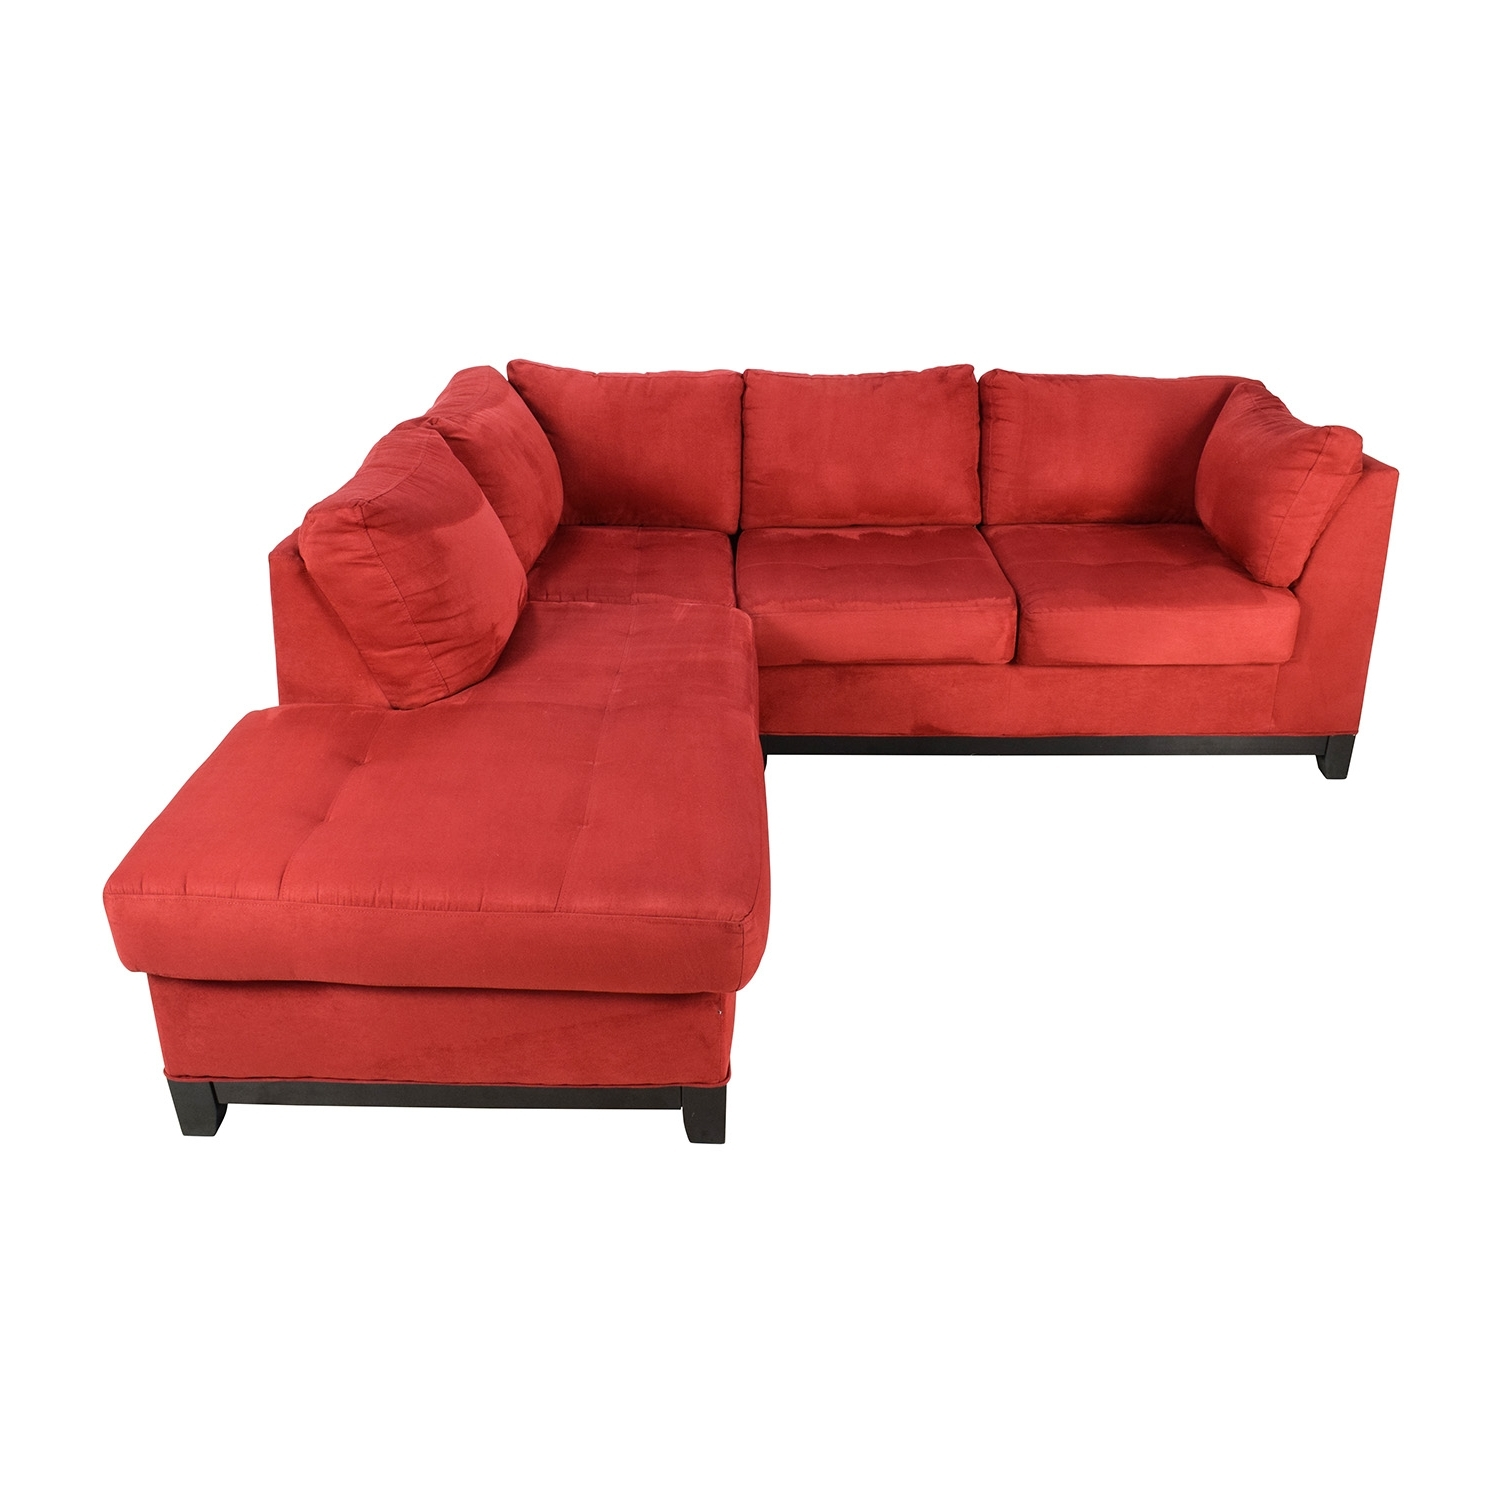 [%67% Off – Raymour And Flanigan Raymour & Flanigan Zella Red With Regard To Well Known Sectional Sofas At Raymour And Flanigan|Sectional Sofas At Raymour And Flanigan In Widely Used 67% Off – Raymour And Flanigan Raymour & Flanigan Zella Red|Widely Used Sectional Sofas At Raymour And Flanigan For 67% Off – Raymour And Flanigan Raymour & Flanigan Zella Red|Most Up To Date 67% Off – Raymour And Flanigan Raymour & Flanigan Zella Red Inside Sectional Sofas At Raymour And Flanigan%] (View 4 of 20)